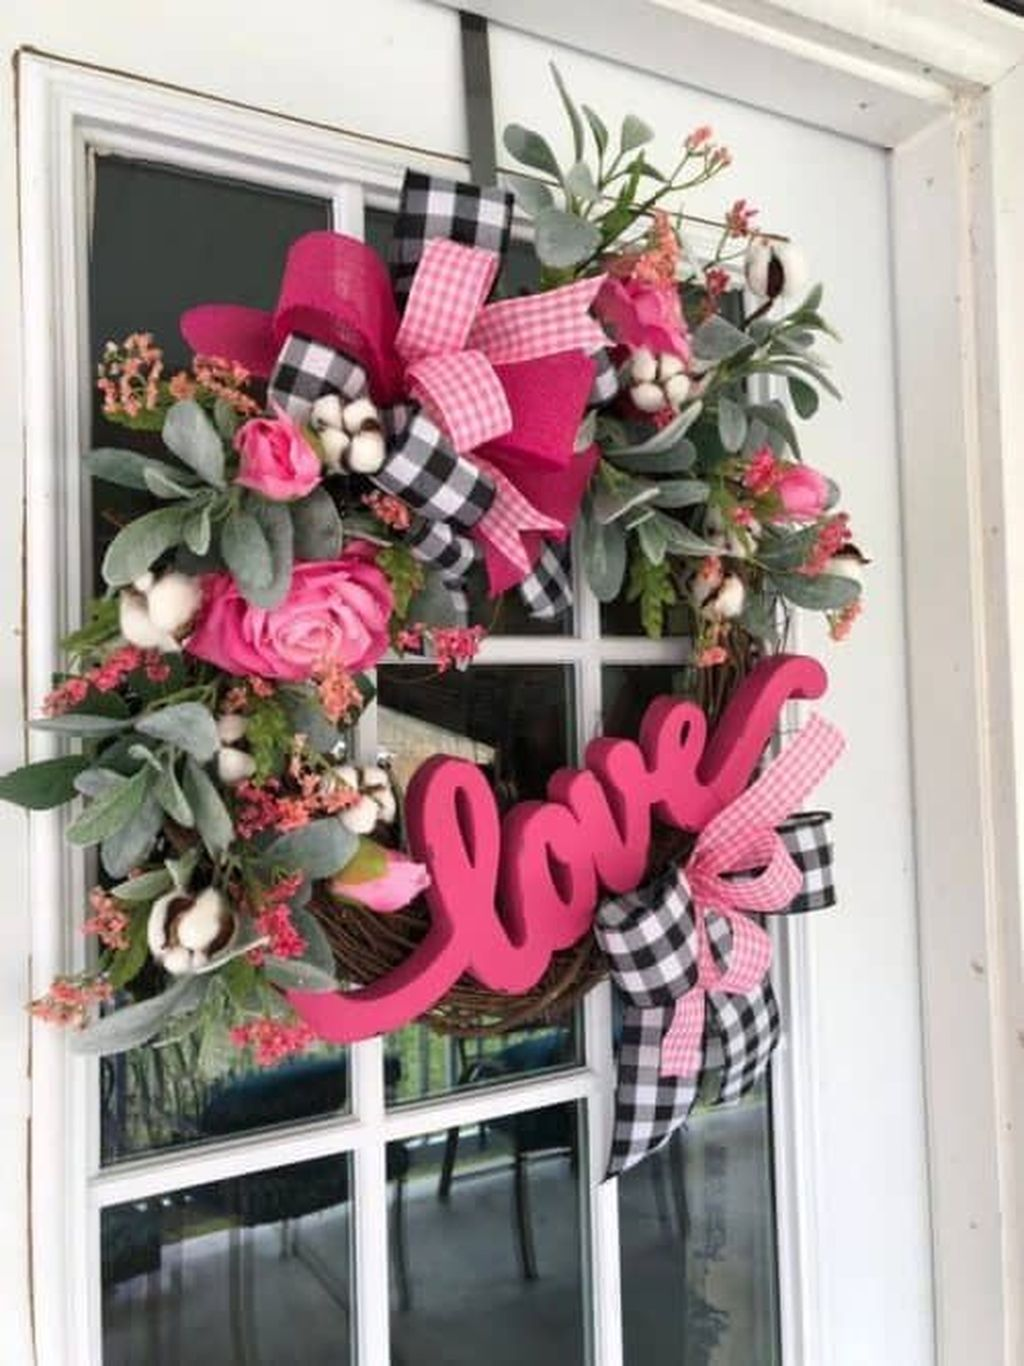 Inspiring Valentine Crafts Ideas For Your Home Decor 08